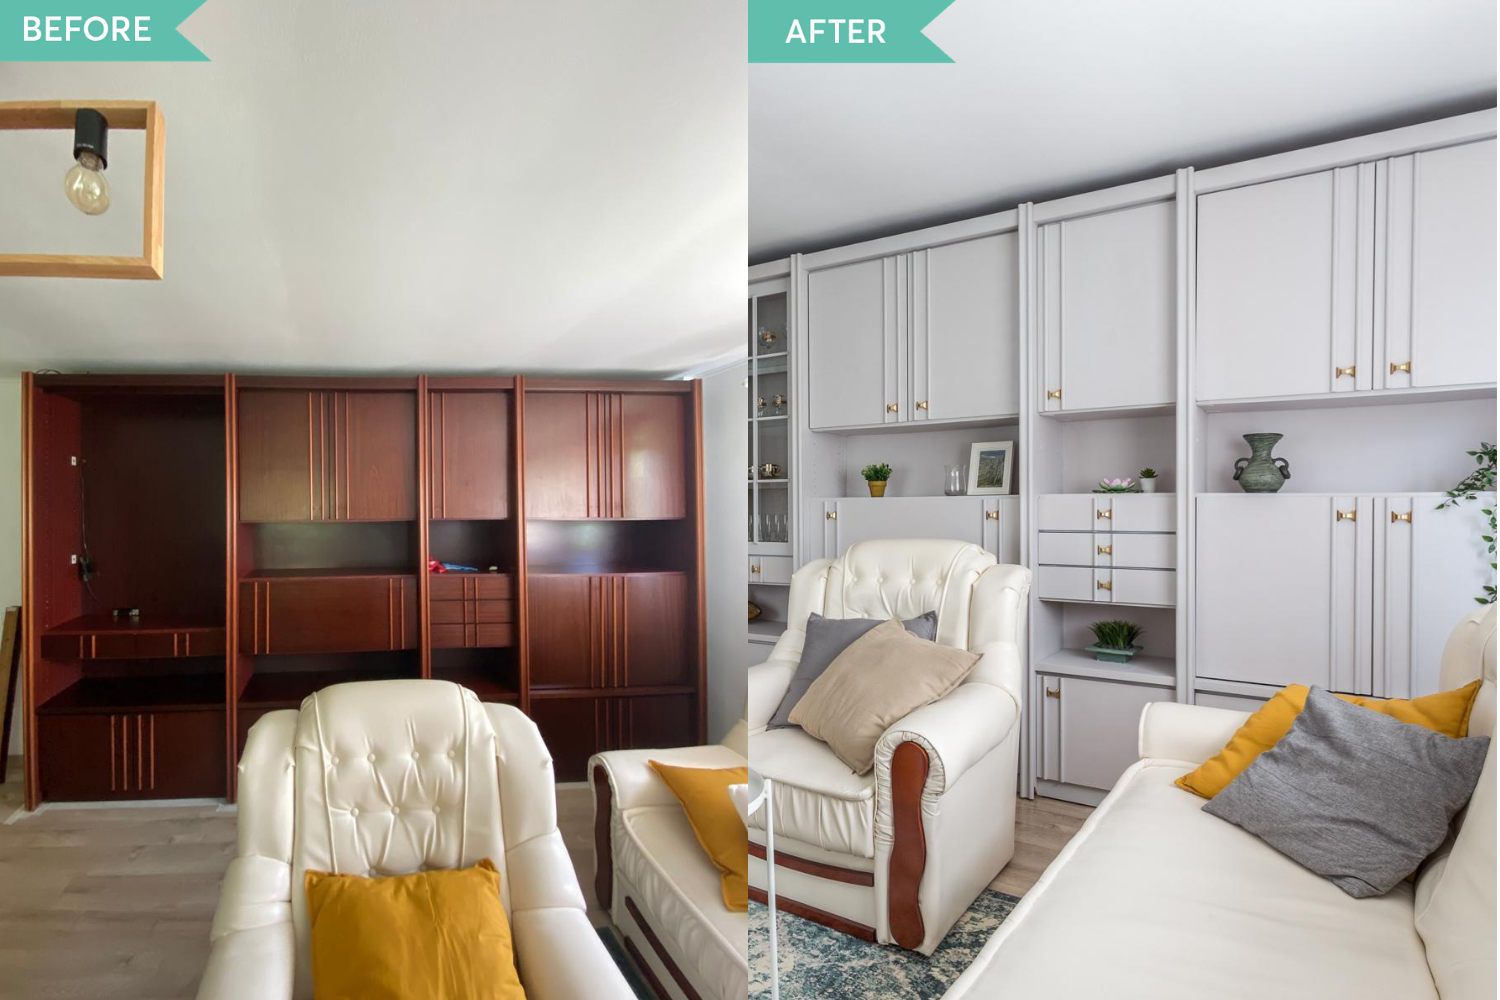 Zen Casa Comarnic - before and after - amenajare AfterDeco (10)